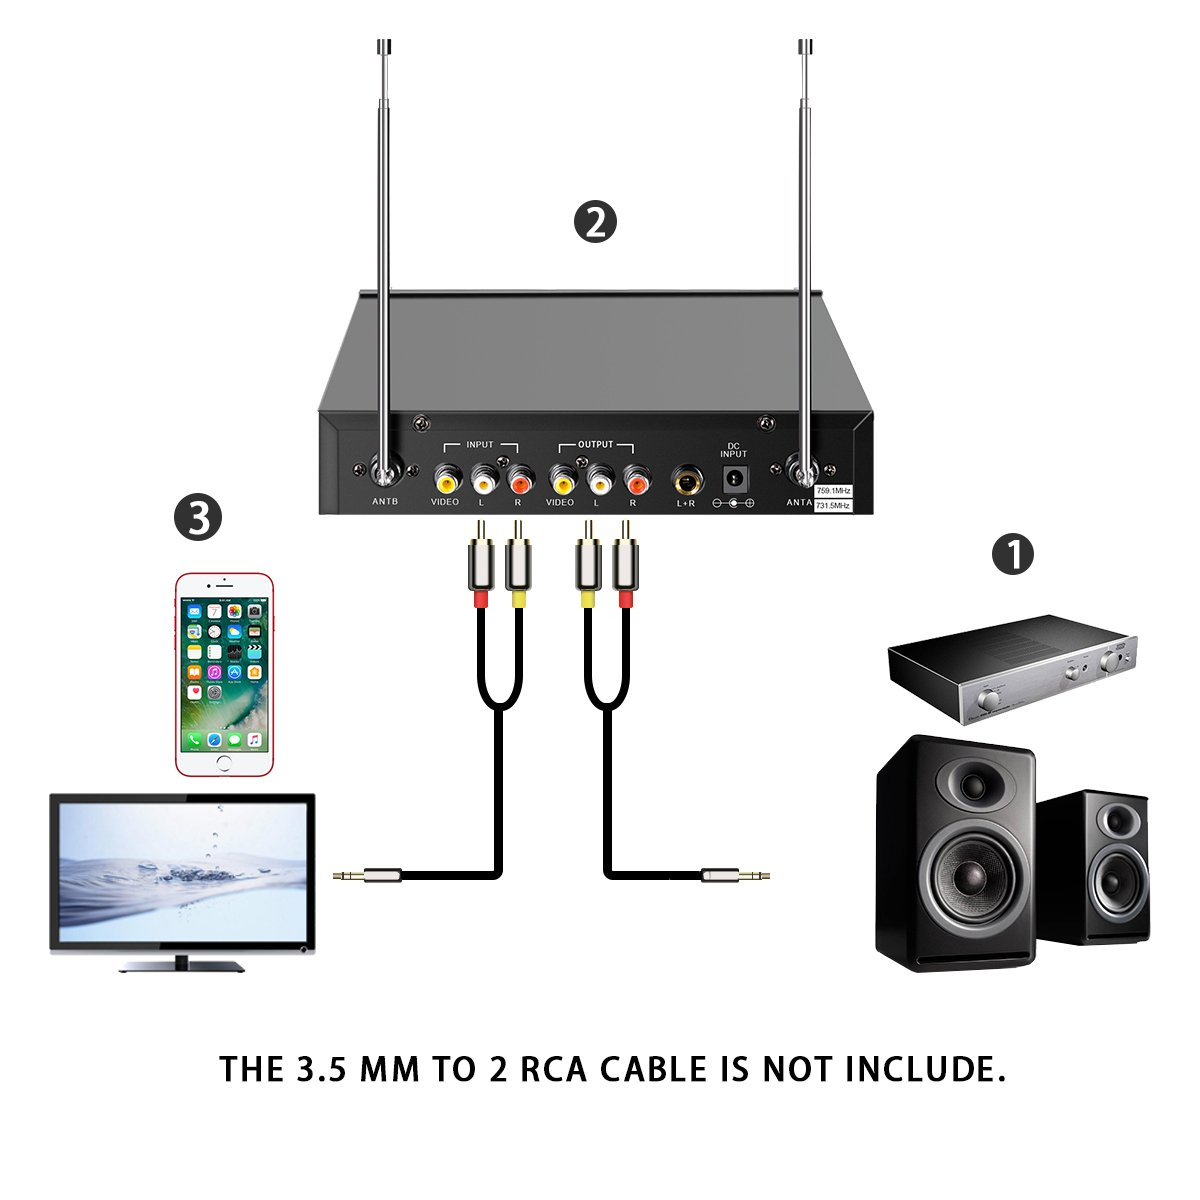 EIVOTOR 2-Channel Professional Portable VHF Wireless Microphone System with 2 Handheld Microphones for Karaoke Singing Machine White A EIVOTORFirstmore1506 Home KTV Set